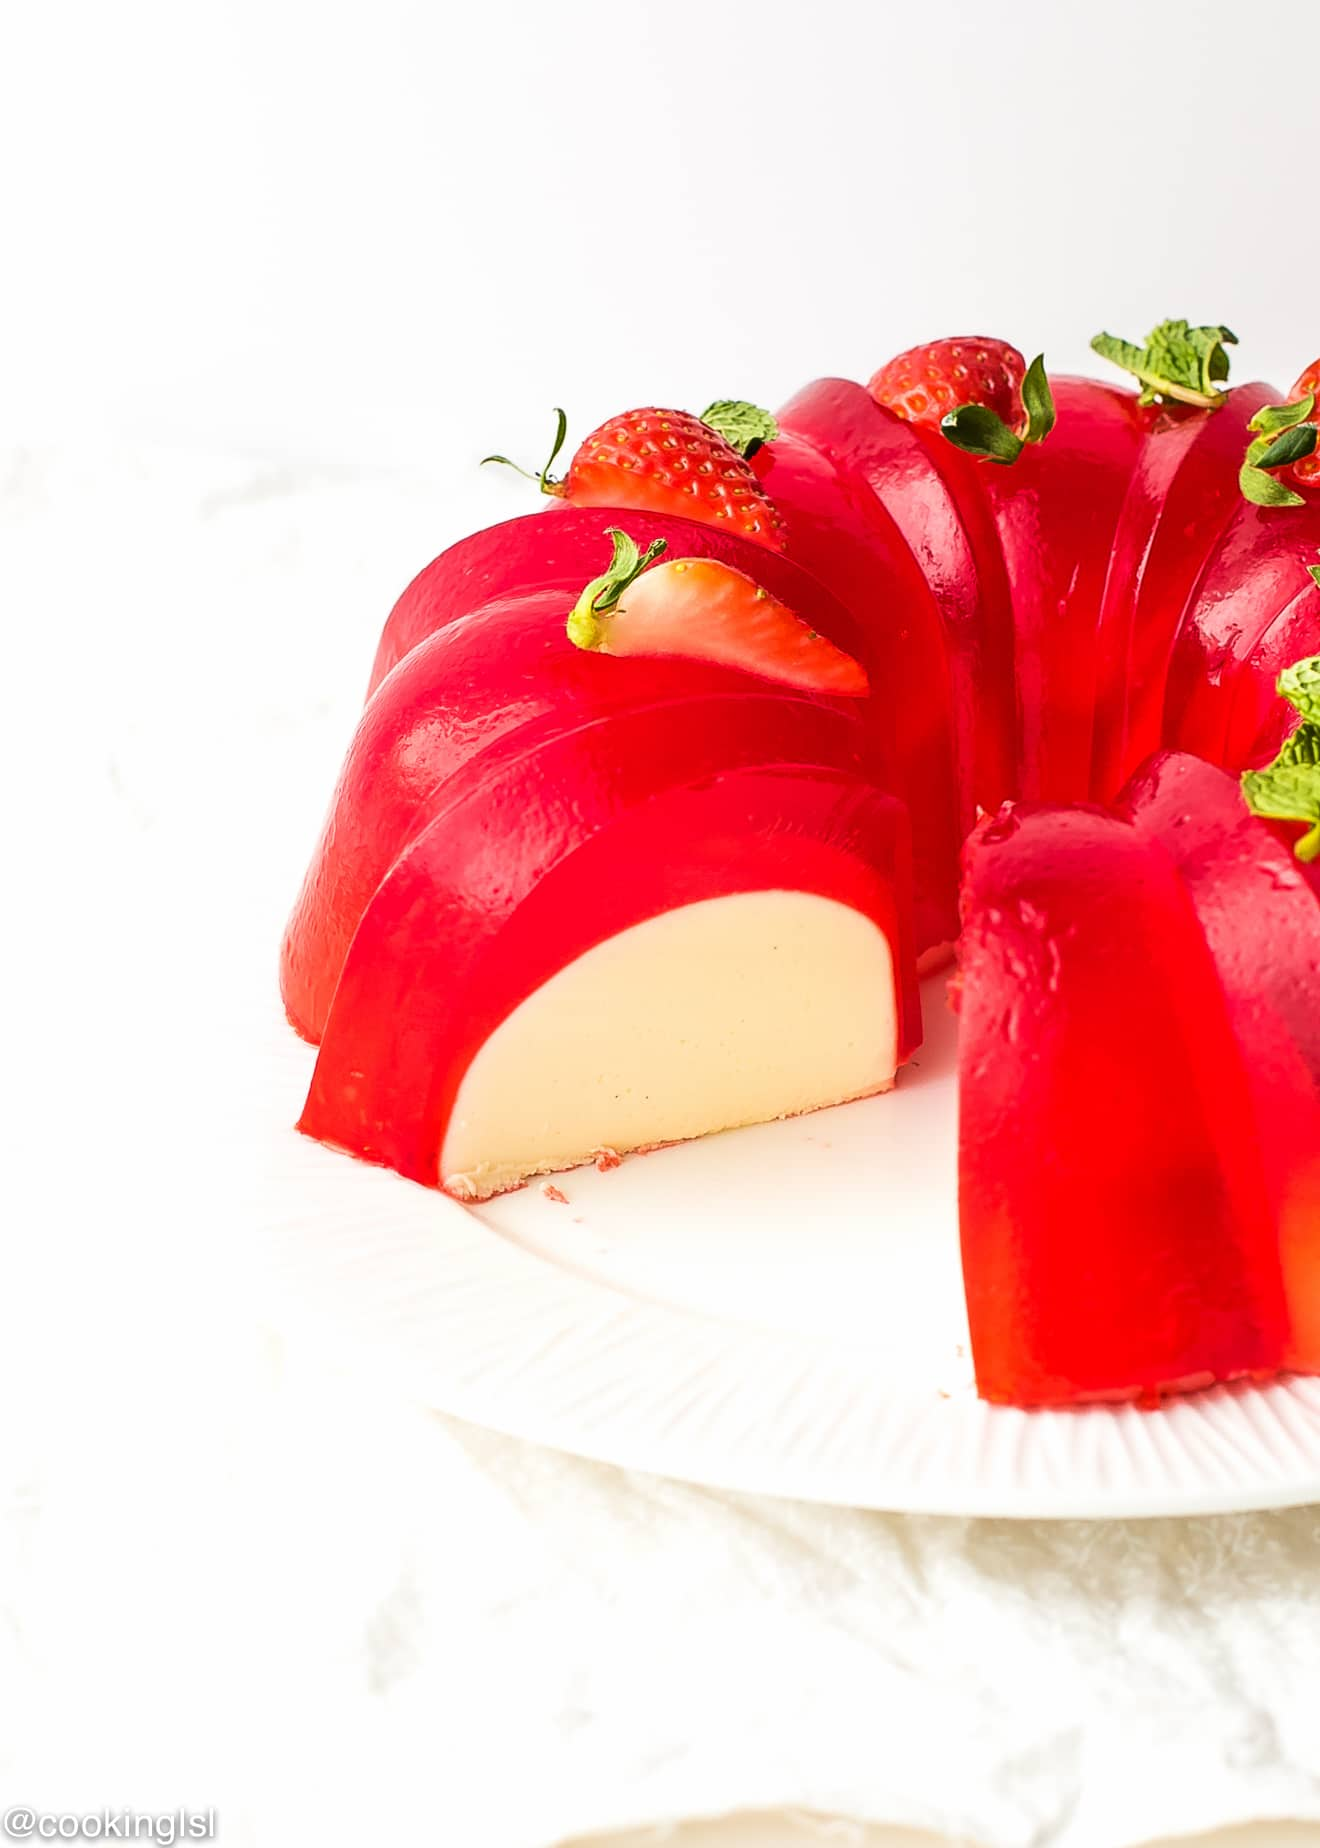 Milk Strawberry Jell O Mold Bundt Recipe Cooking Lsl